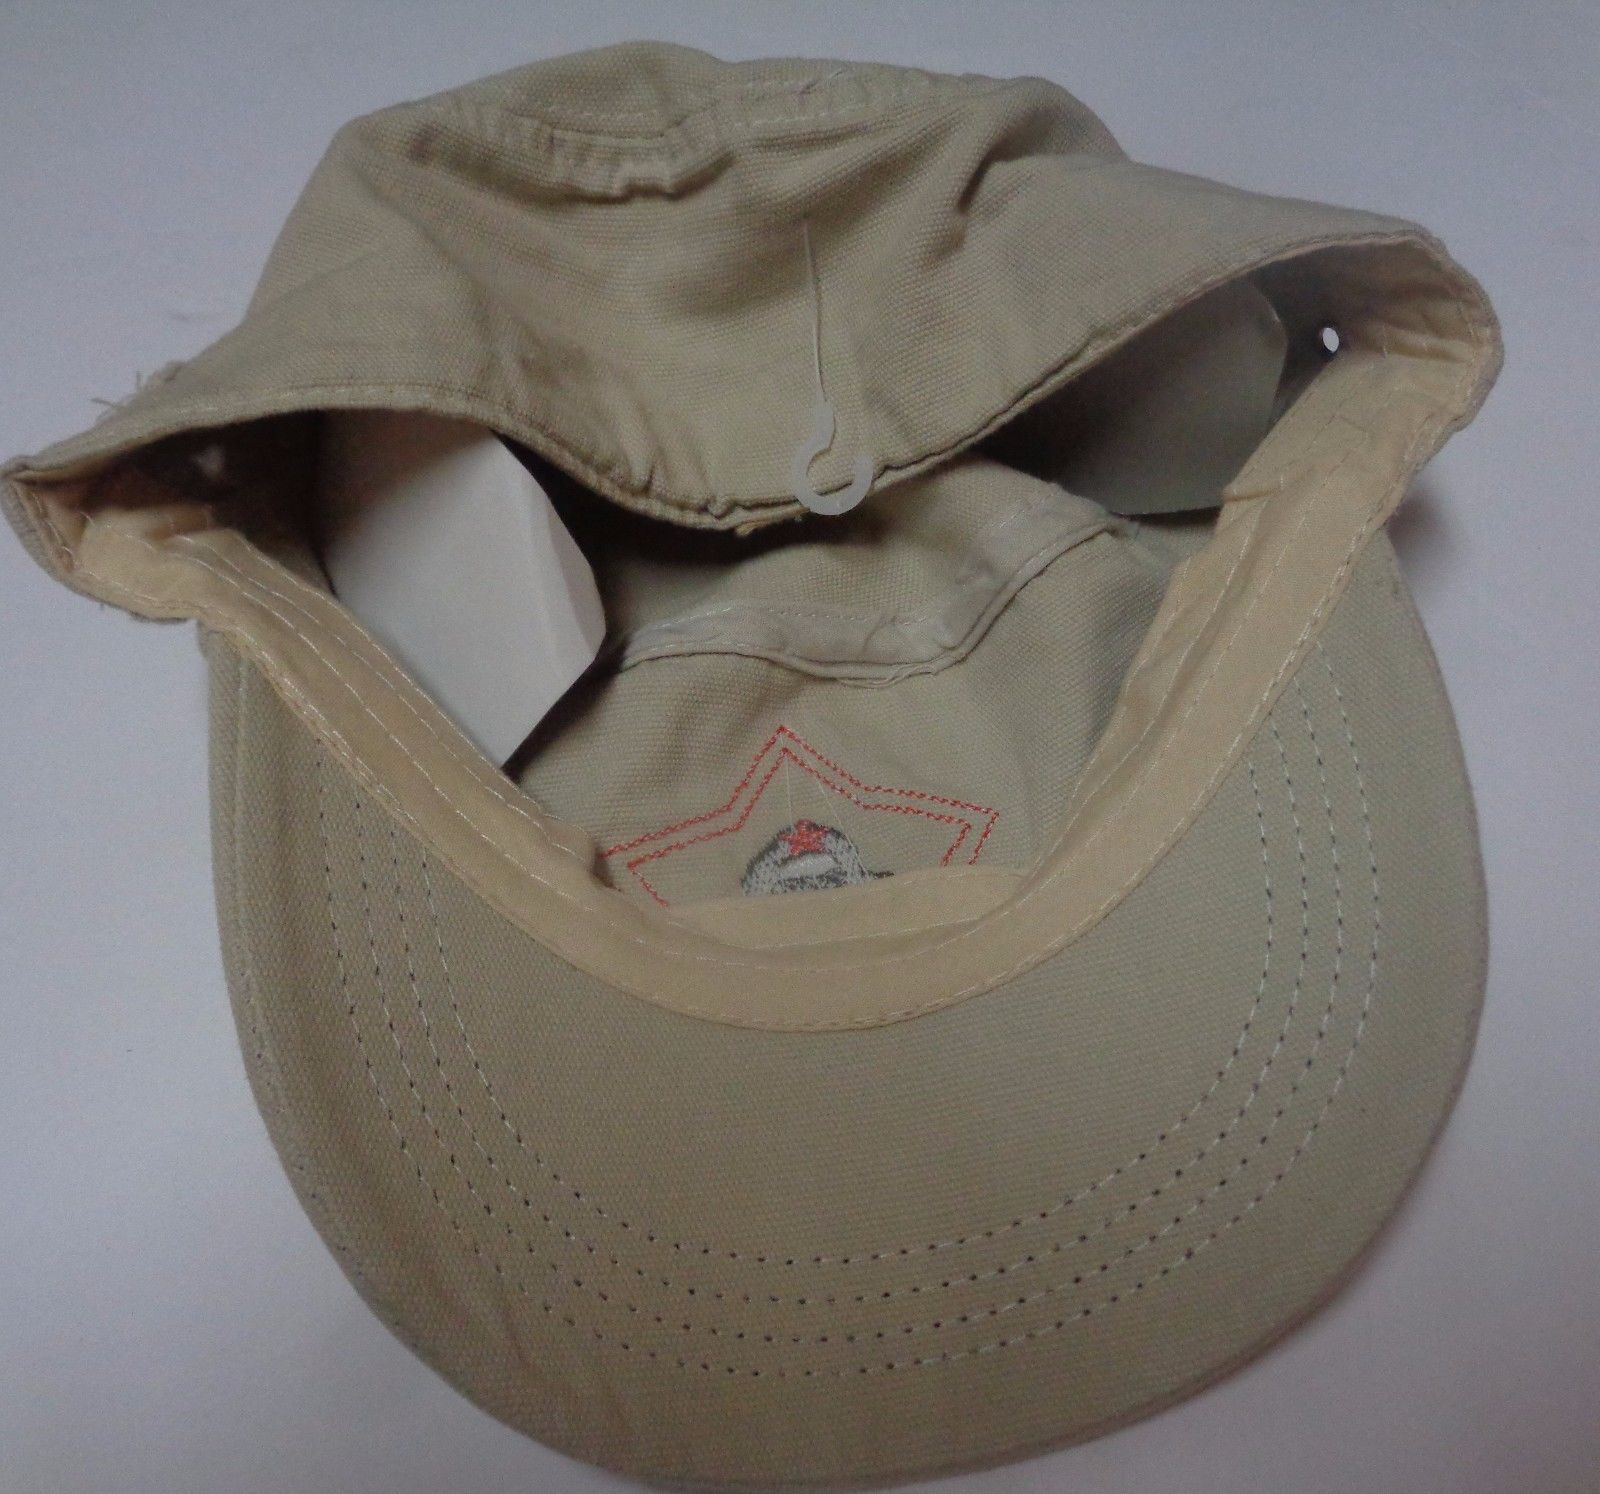 Che Guevara Red Star Distressed Hat Light Khaki Beige NWT Adult Size Revolution